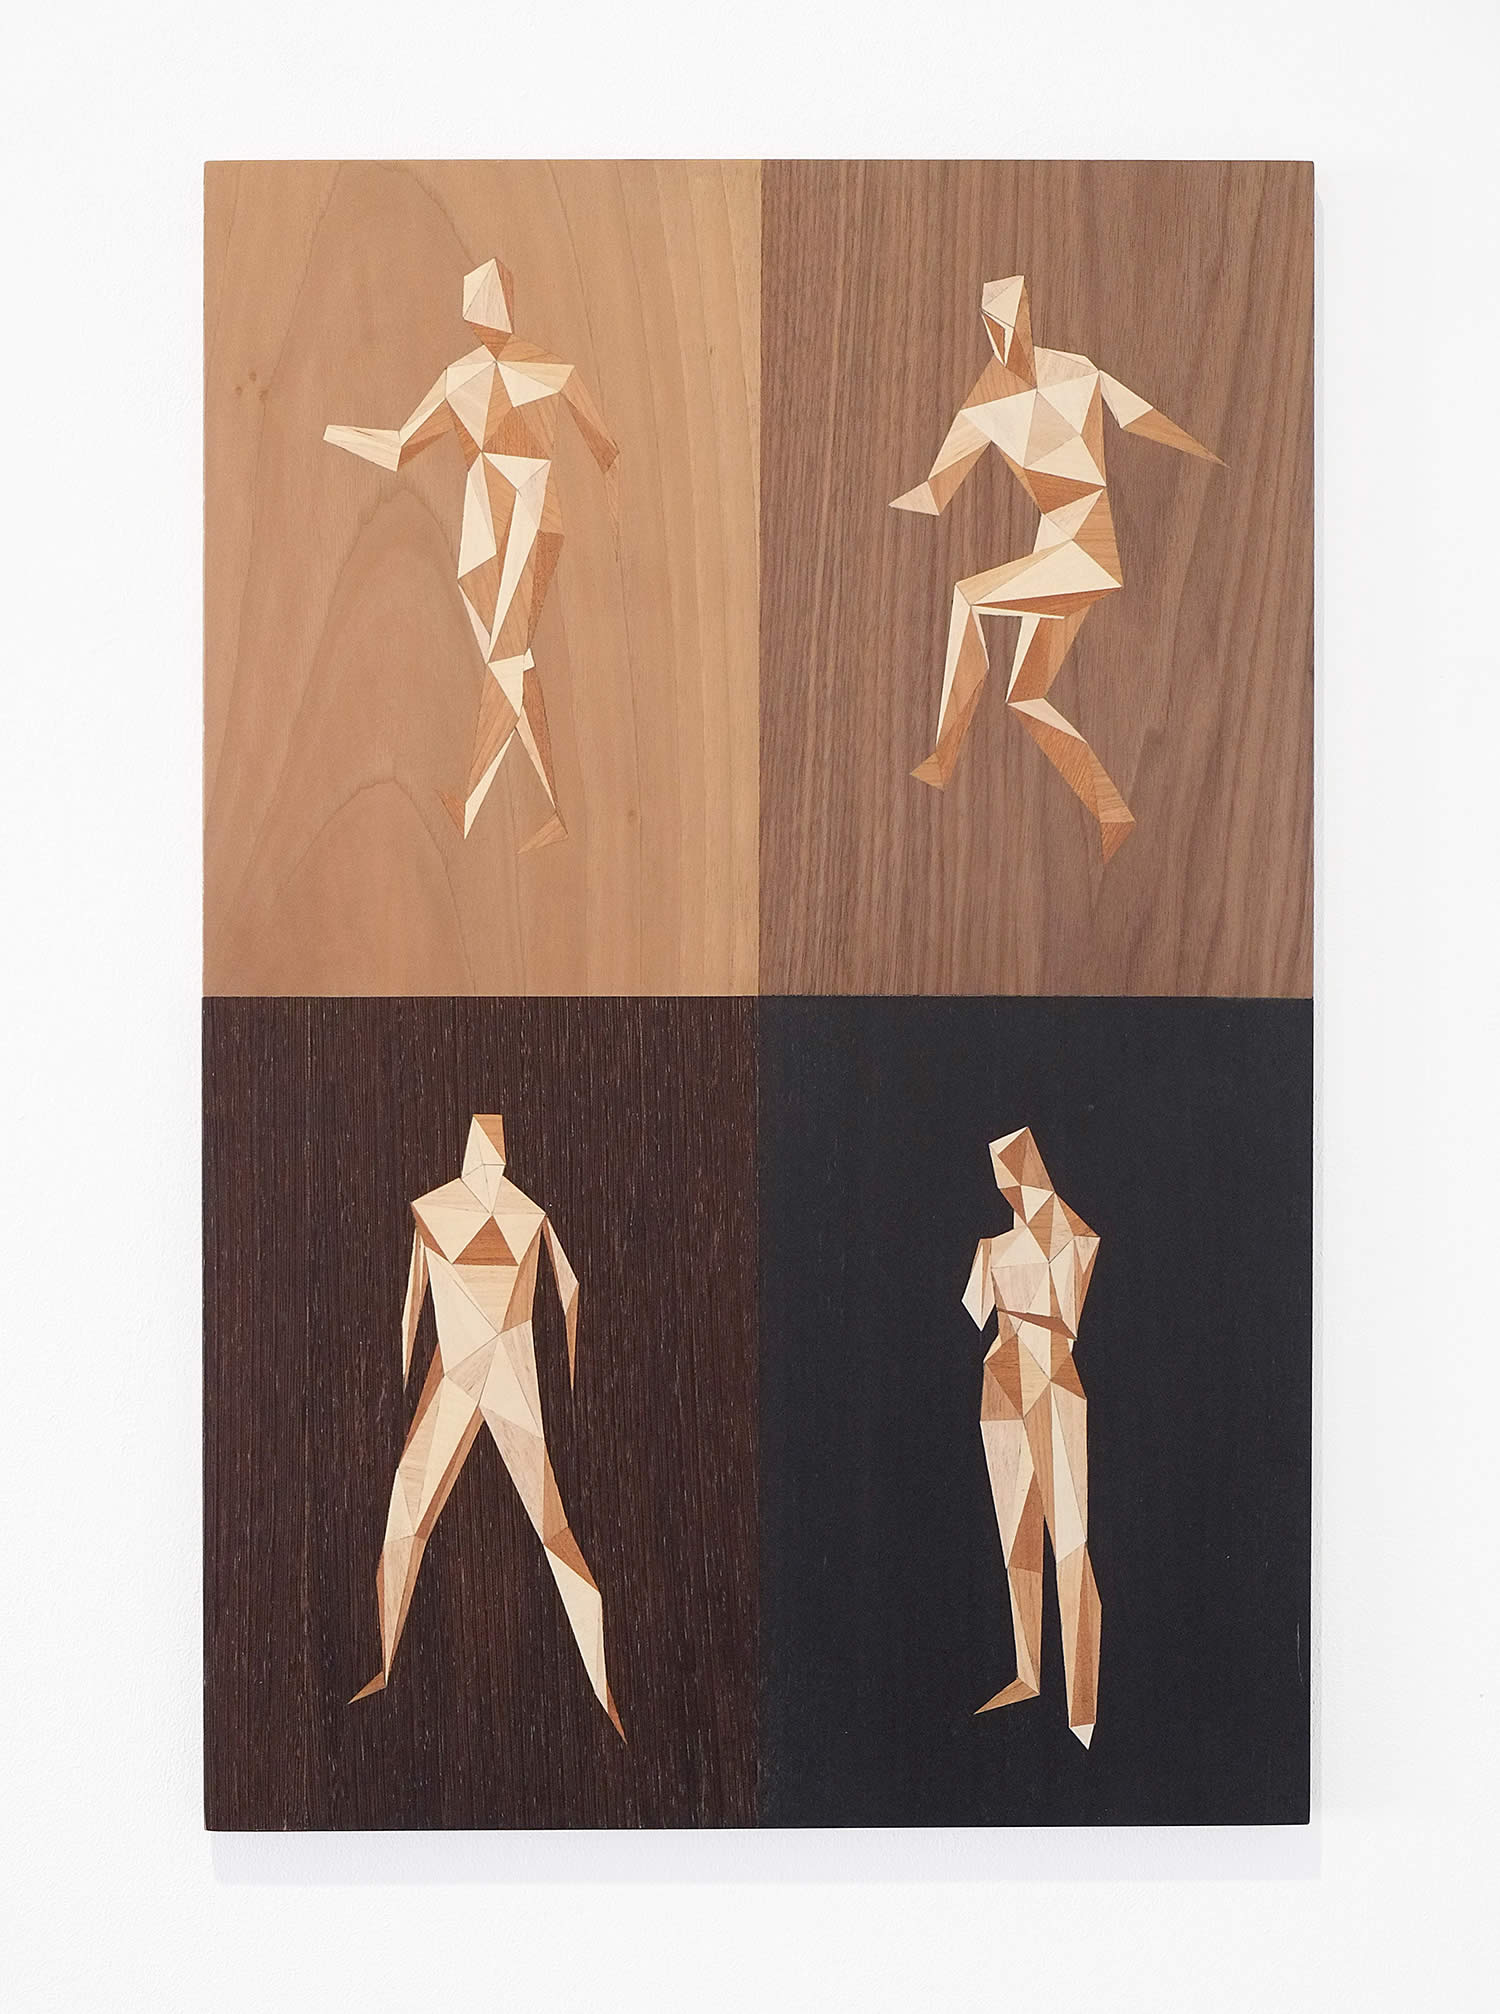 human figures made in wood. quid by rocco pezzella